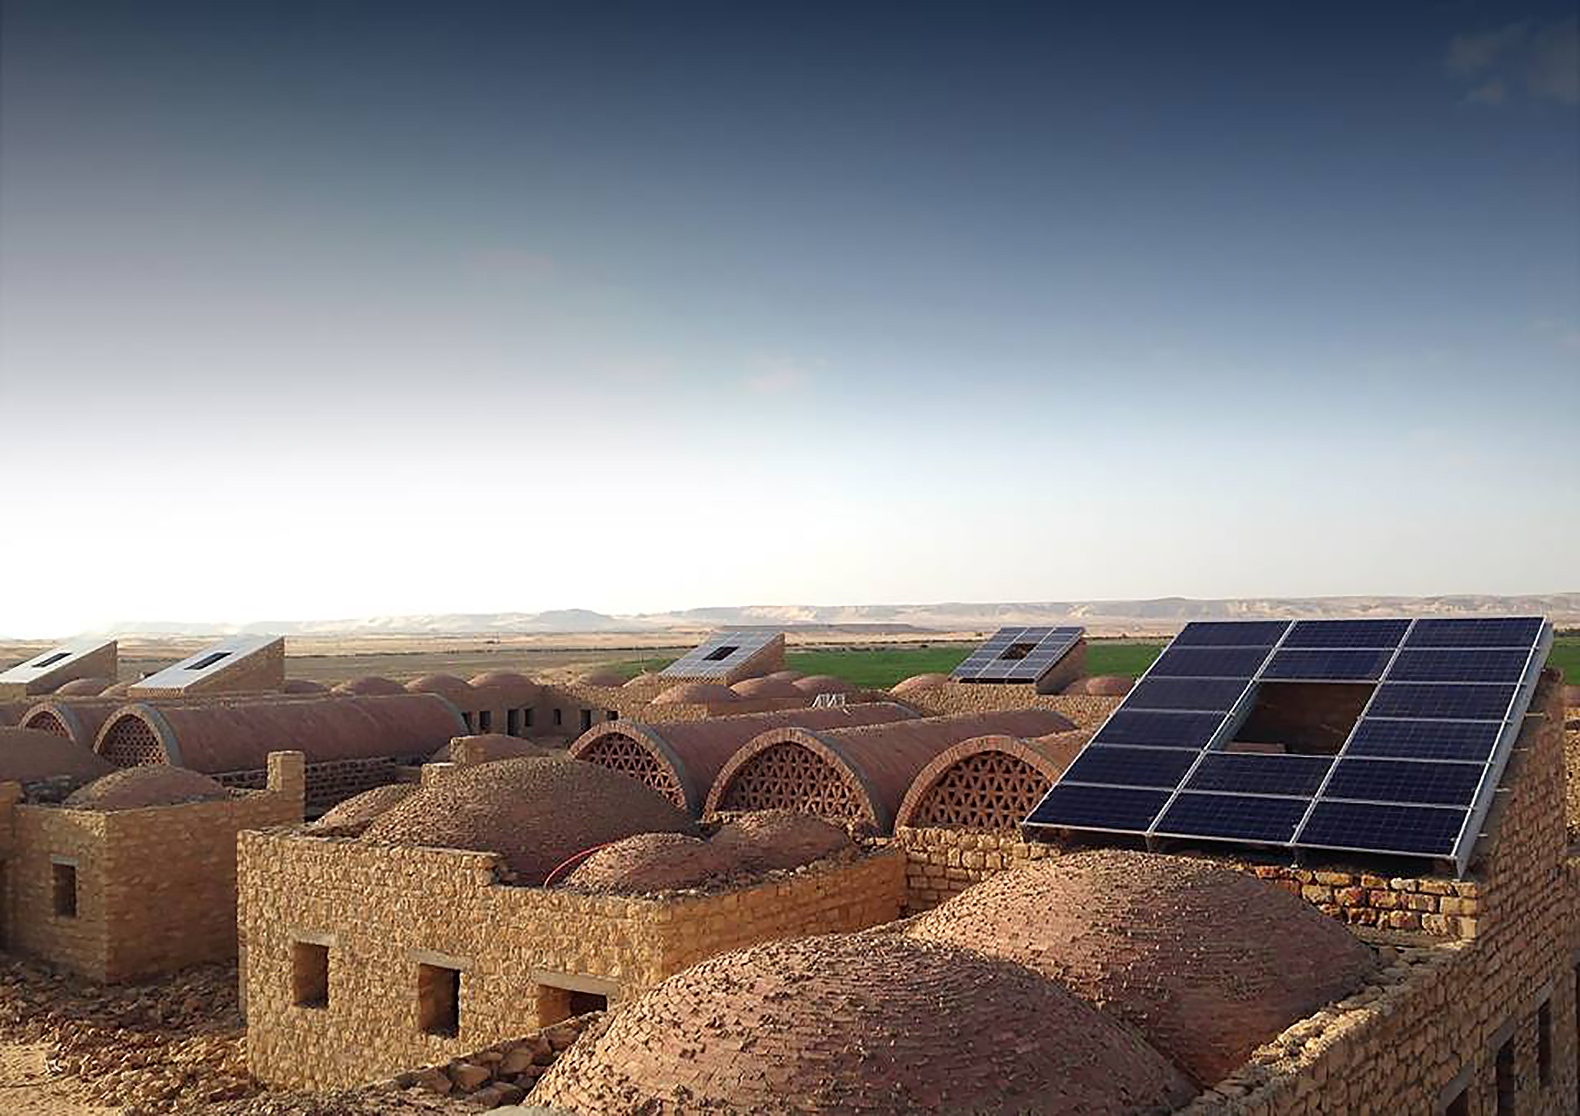 welcome-to-egypts-first-solar-powered-village-located-in-the-desert-5